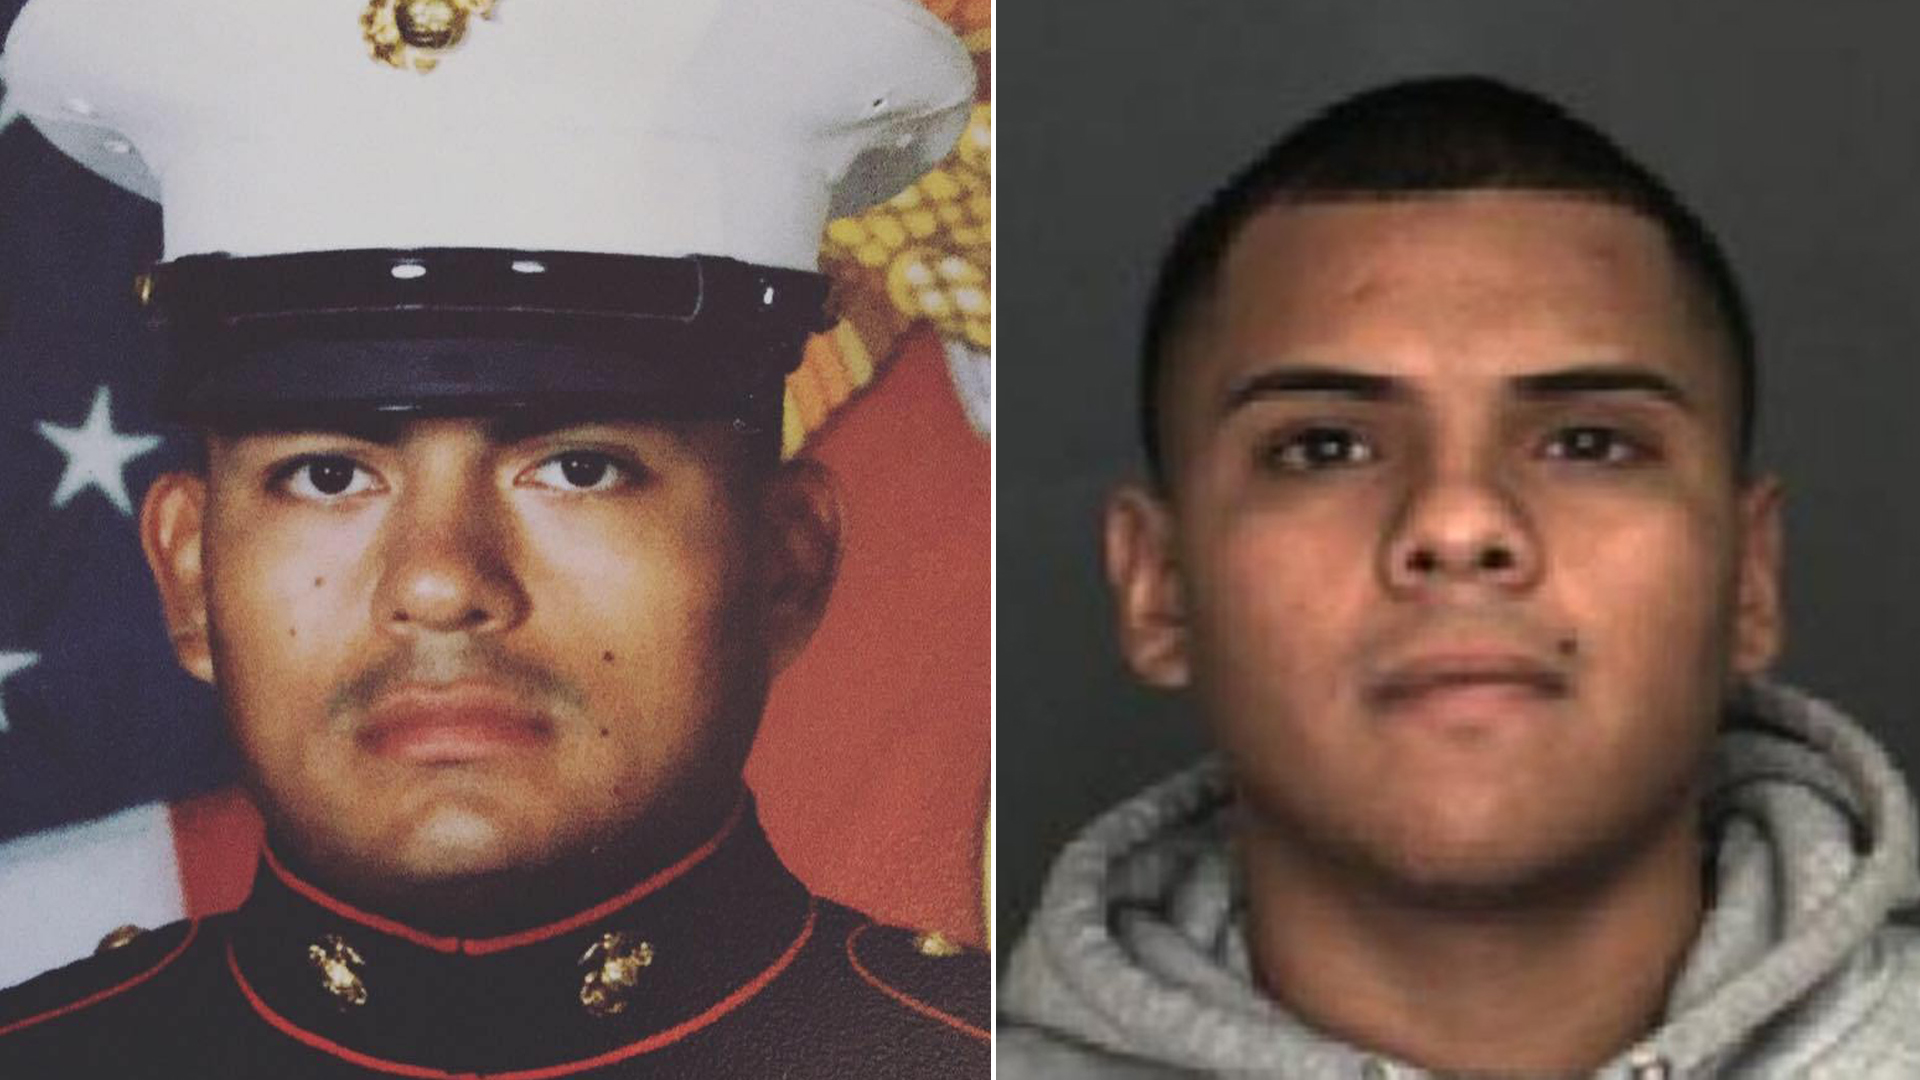 On the left, Douglas Rivas-Rauda, a U.S. Marine, is seen in a photo published on his Facebook page. On the right, Arturo Perez Medina, 22, is seen in an undated photo released by the San Bernardino Police Department.